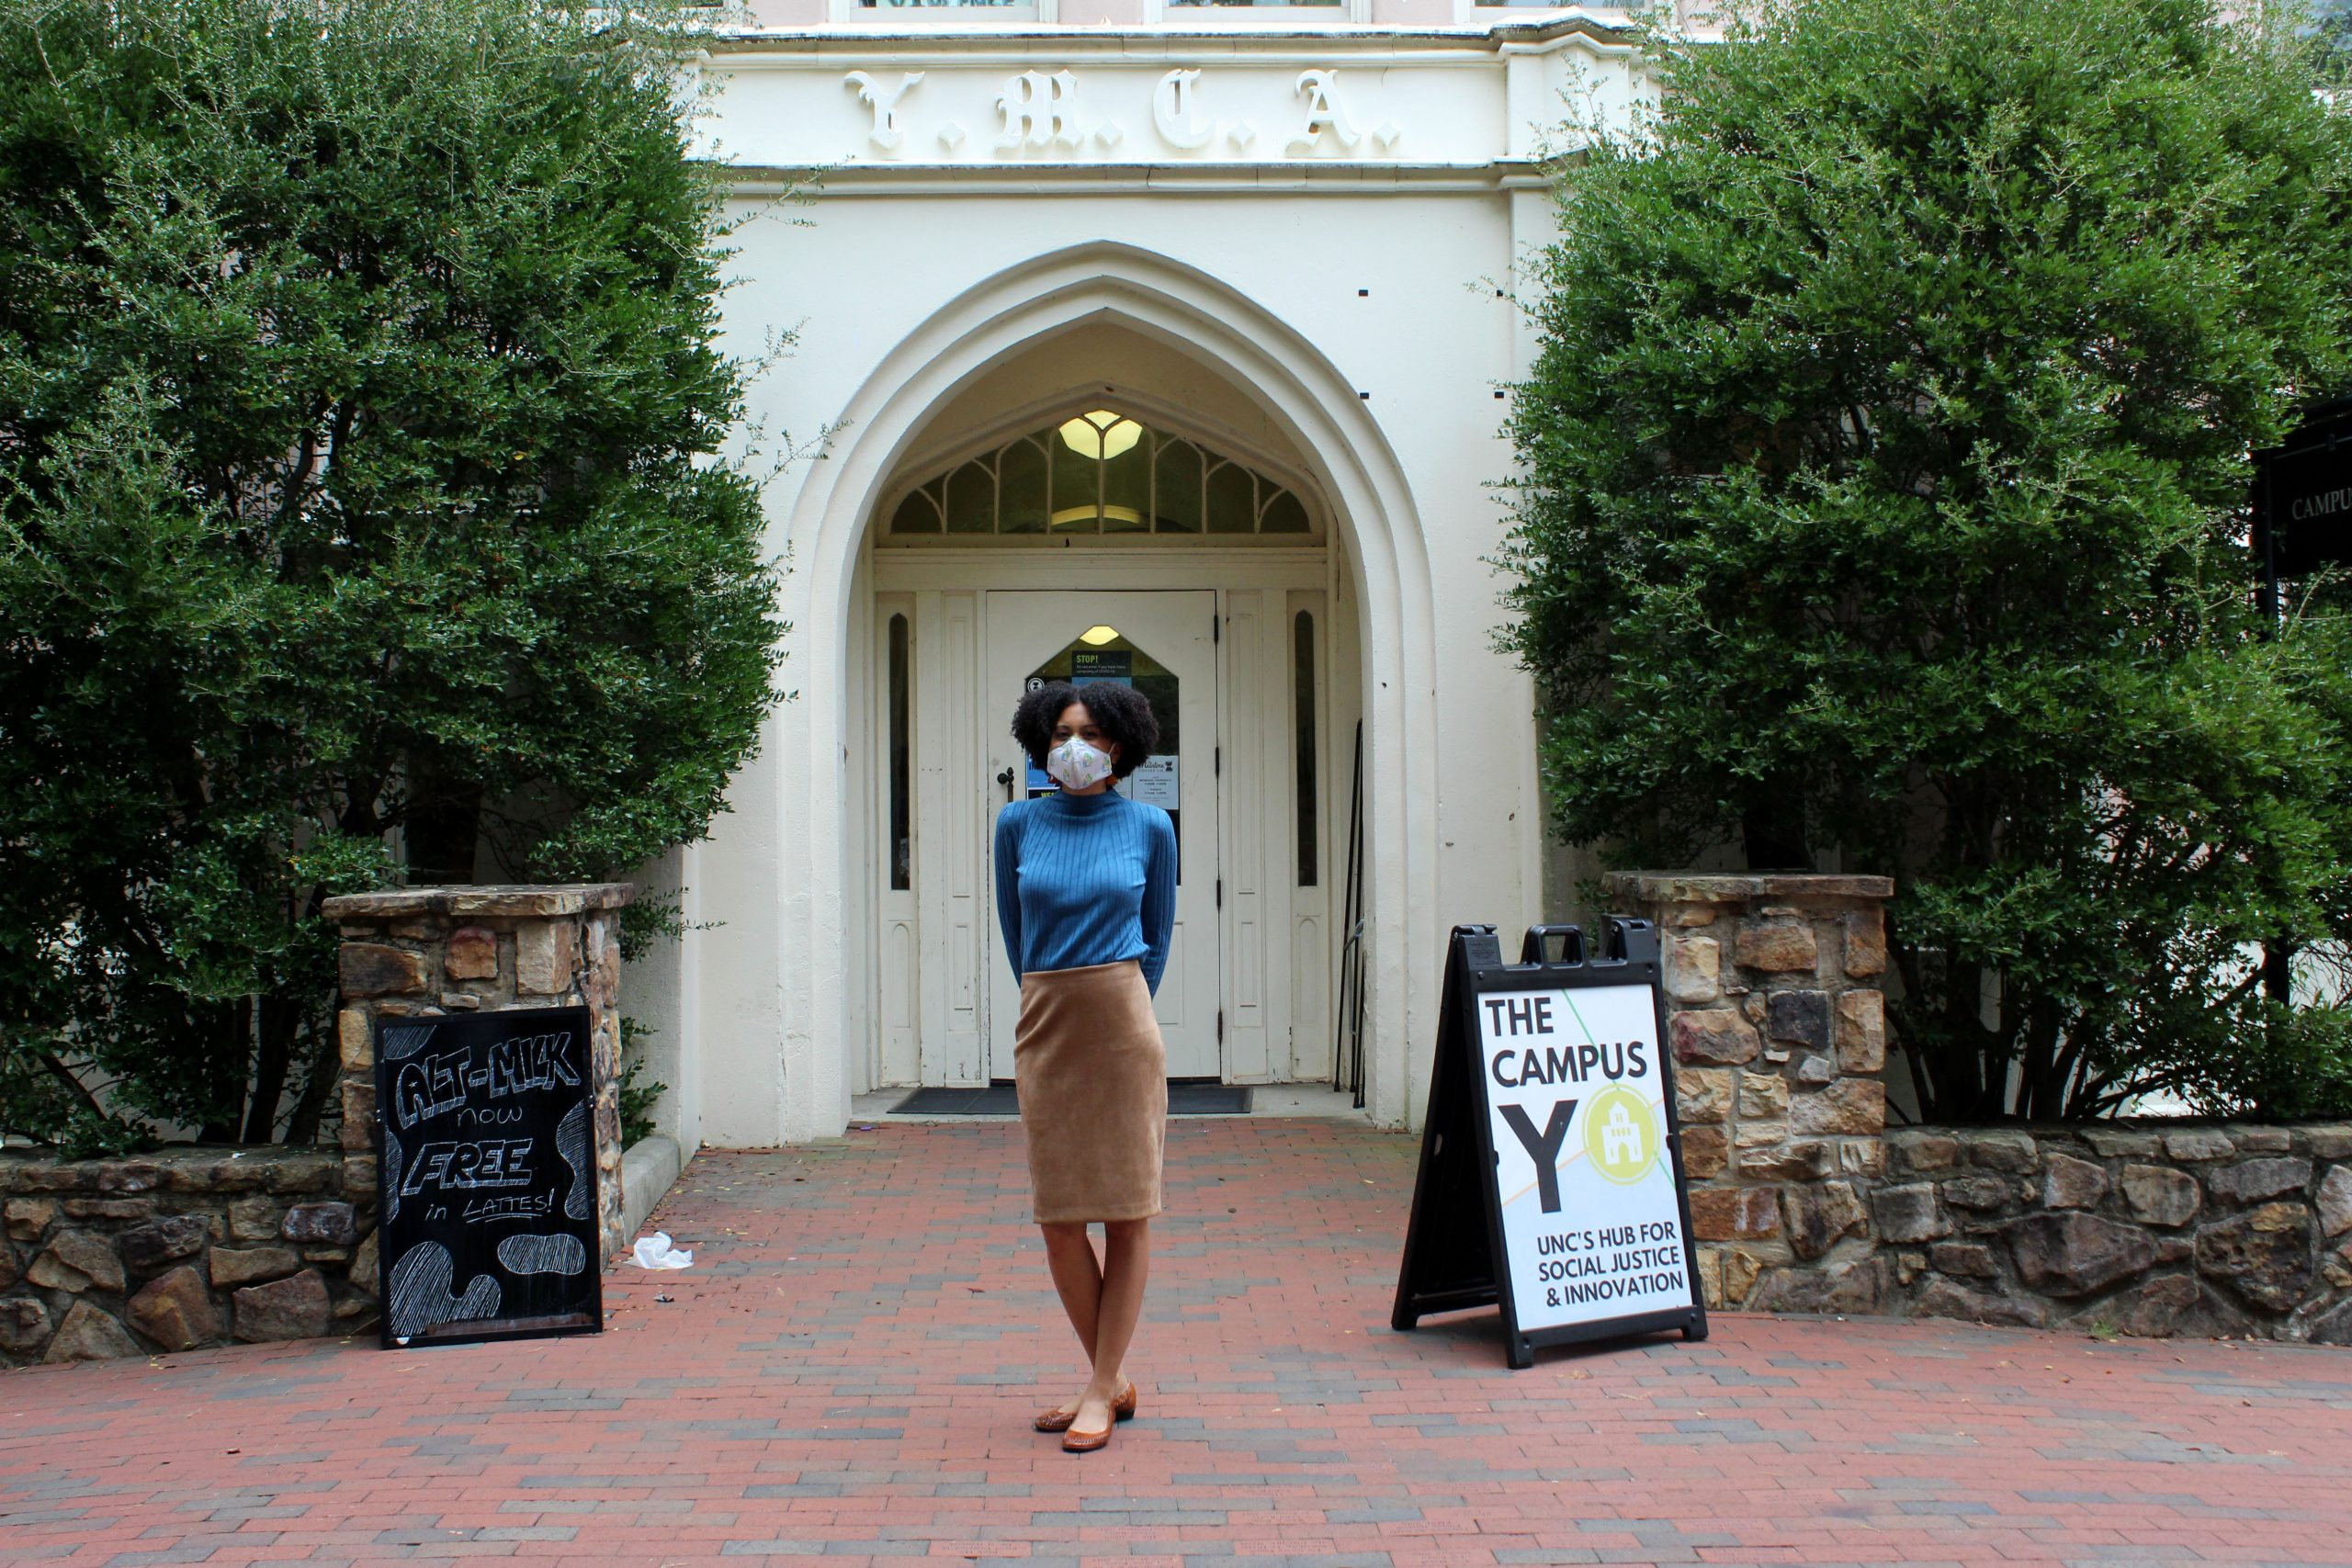 Yalitza Ramos poses for a photograph with her Campus Y mask in front of the Campus Y